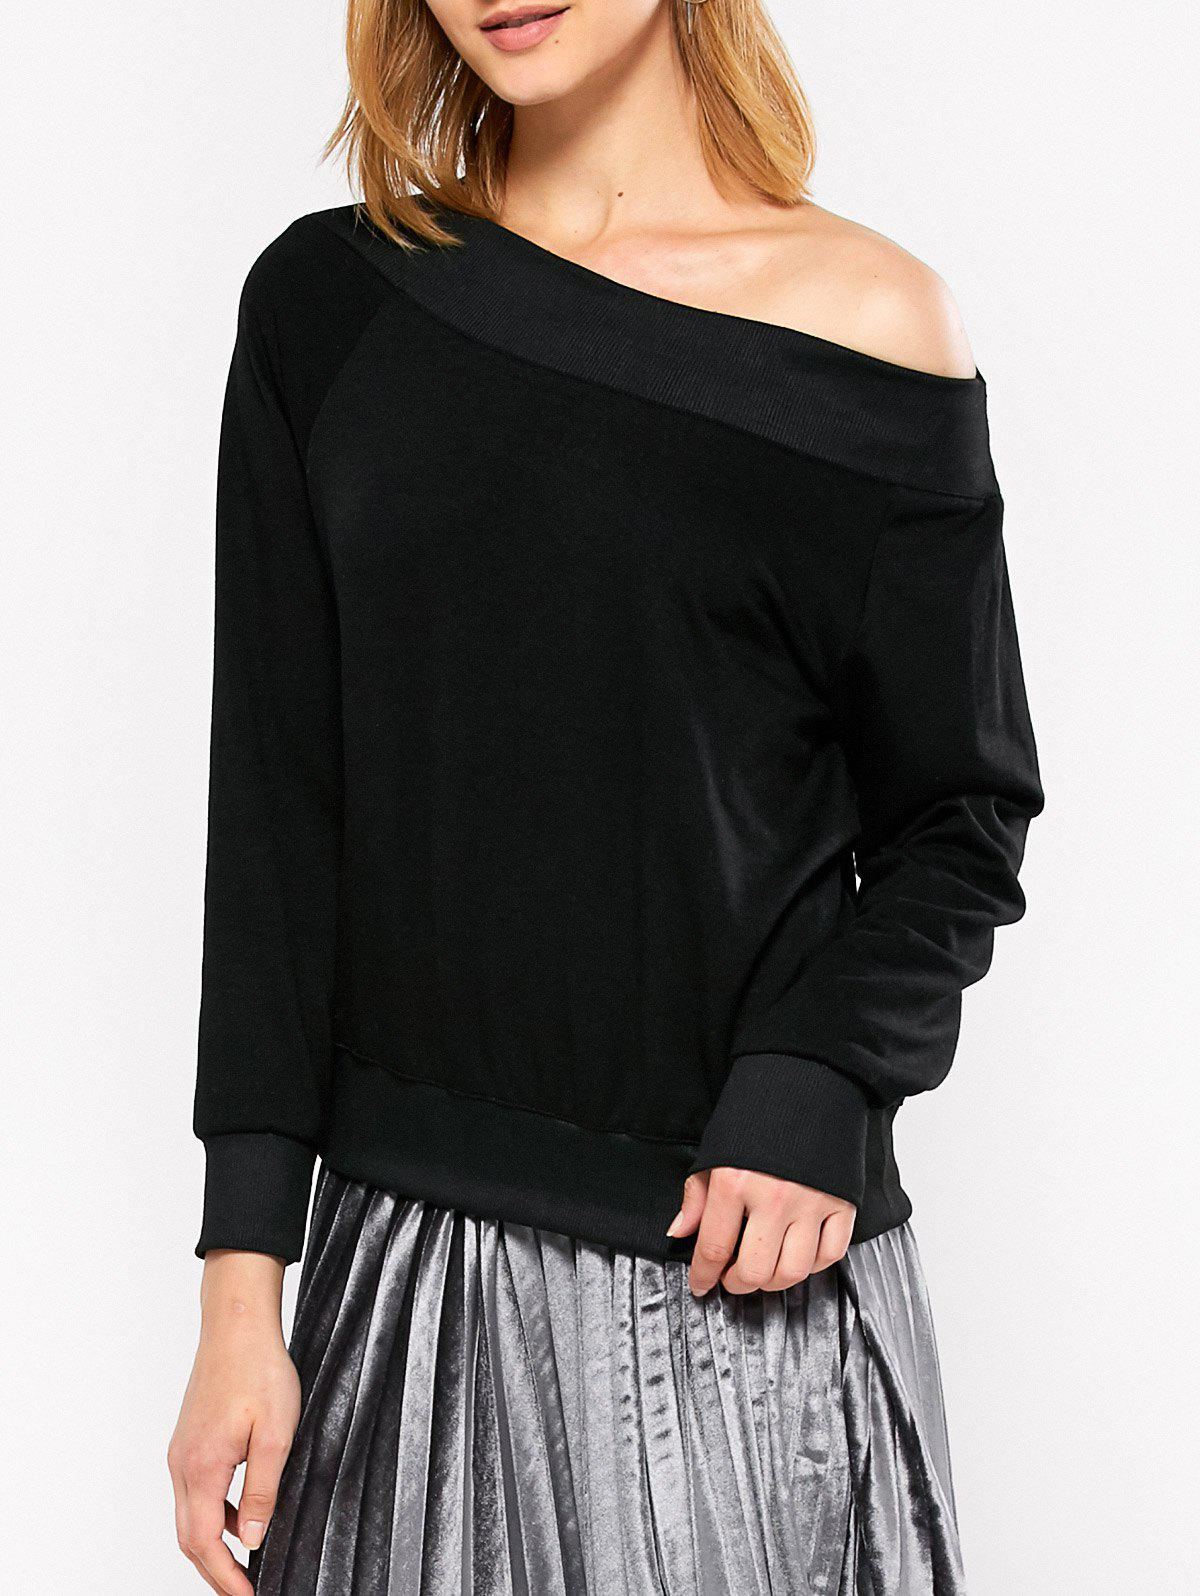 One-Shoulder Casual Loose Sweatshirt - BLACK M